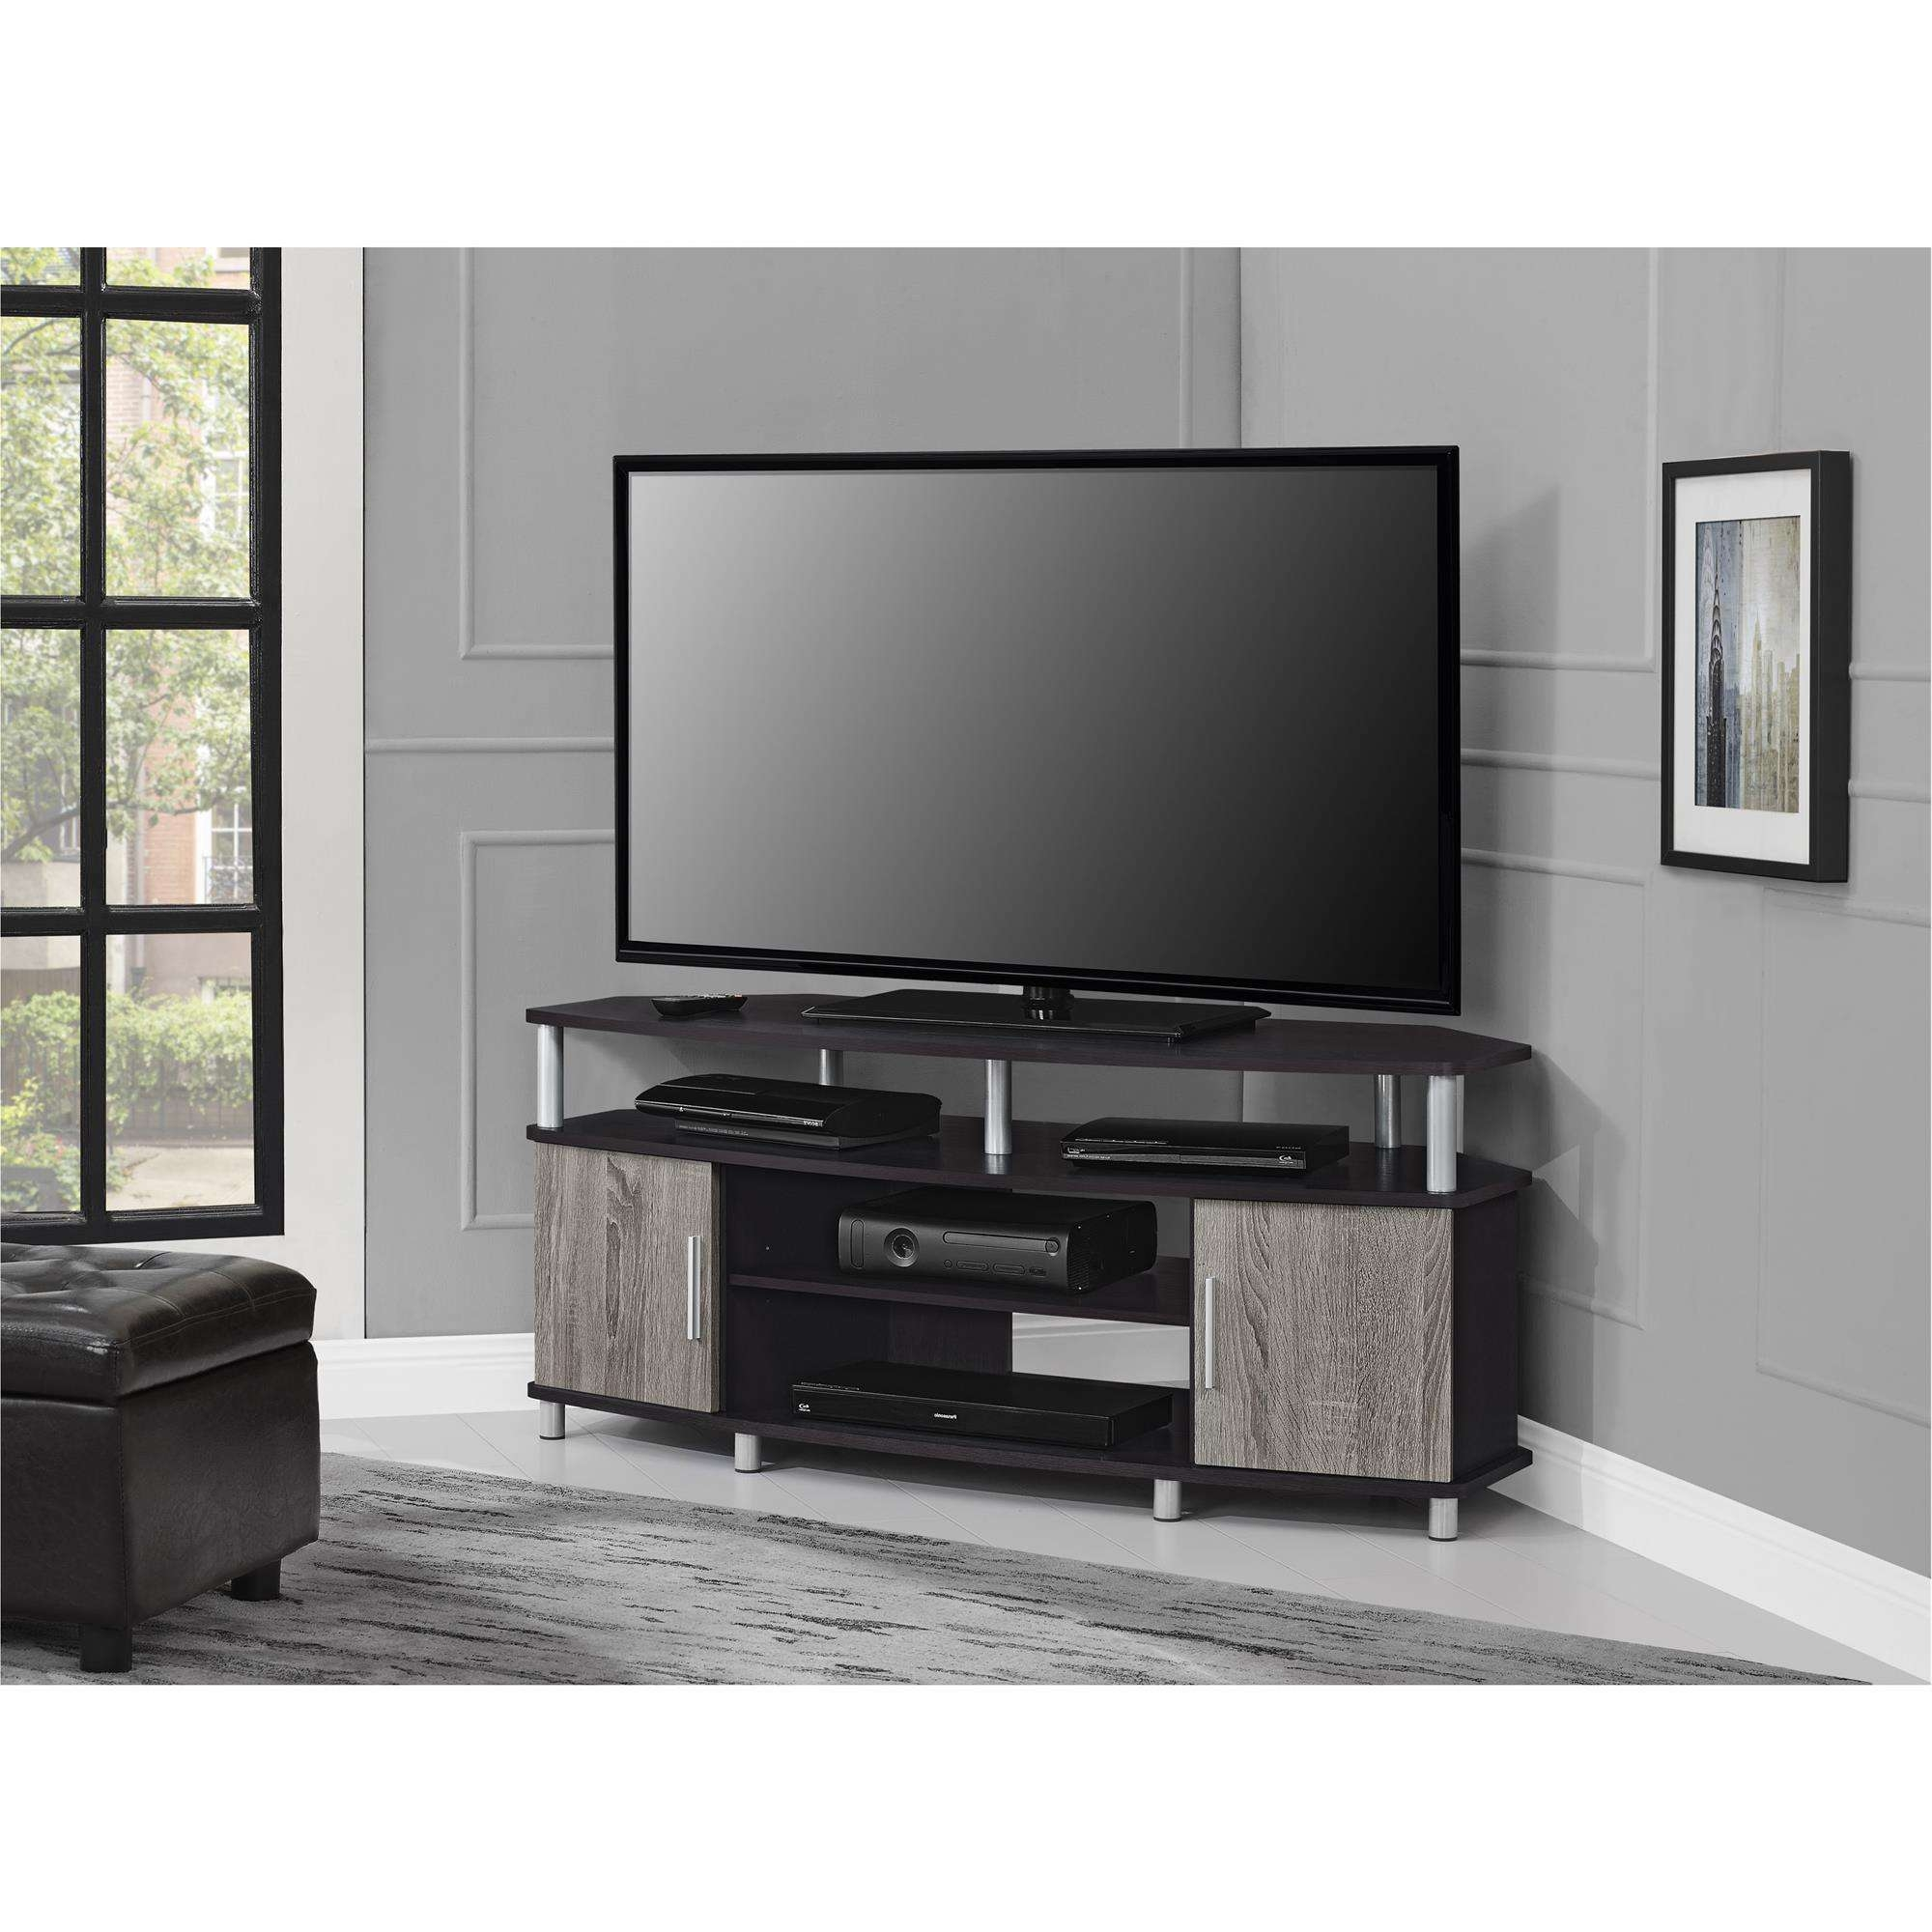 Delicieux Corner Tv Stand For 50 Inch Tv : Showing Photos Of Corner Tv Stands For 50  Inch Tv (View 18 Of 20